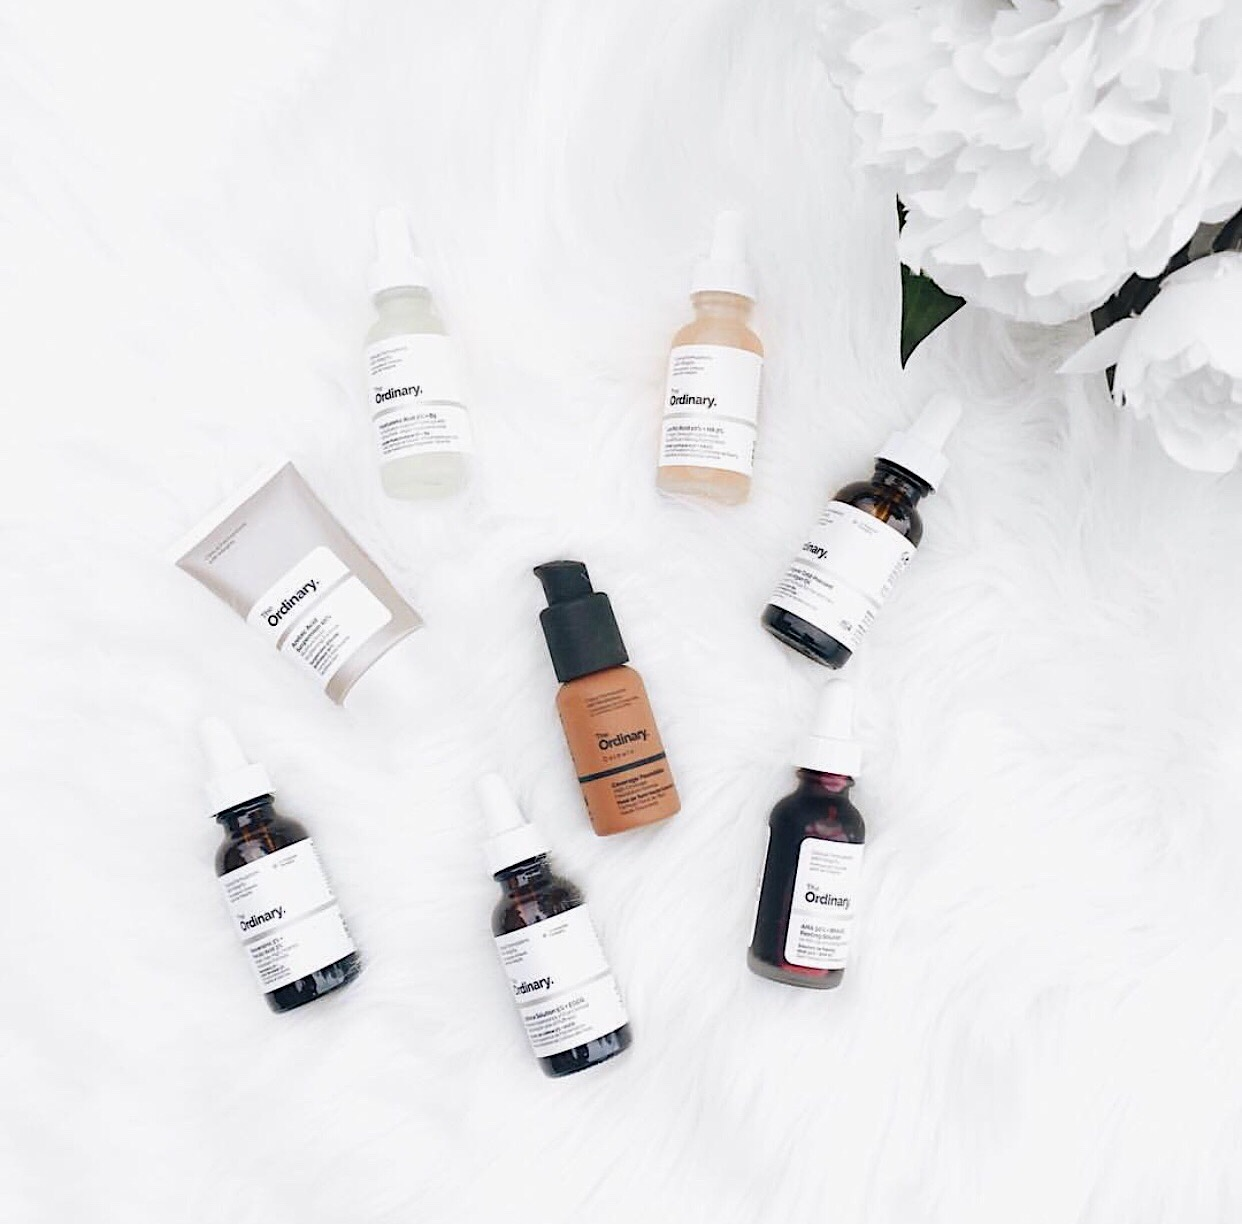 Deciem's The Ordinary Skincare Products – My Review